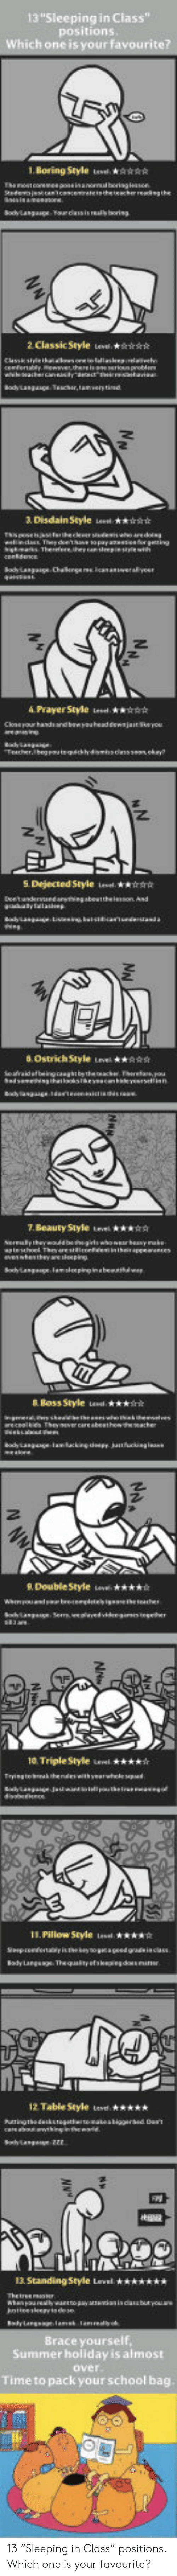 """School, Summer, and Time: 13""""Sleeping in Class""""  positions  Which o  1. Boring Style ese kR  2 ClassicStyle v  3 Disdain Style eest  4 PrayerStyle eHA  5 Dejected Style  Ostrich Style Level s  7. Beauty Style evel  & Boss Style it  2  9 DosubleStyle w  10. Triple Style  une. ★★★★☆  li.Pillow Style iesel  ★☆  12 Table Style eve  13. Standing Style Level  Summer holiday is almost  over  Time to pack your school bag 13 """"Sleeping in Class"""" positions.  Which one is your favourite?"""